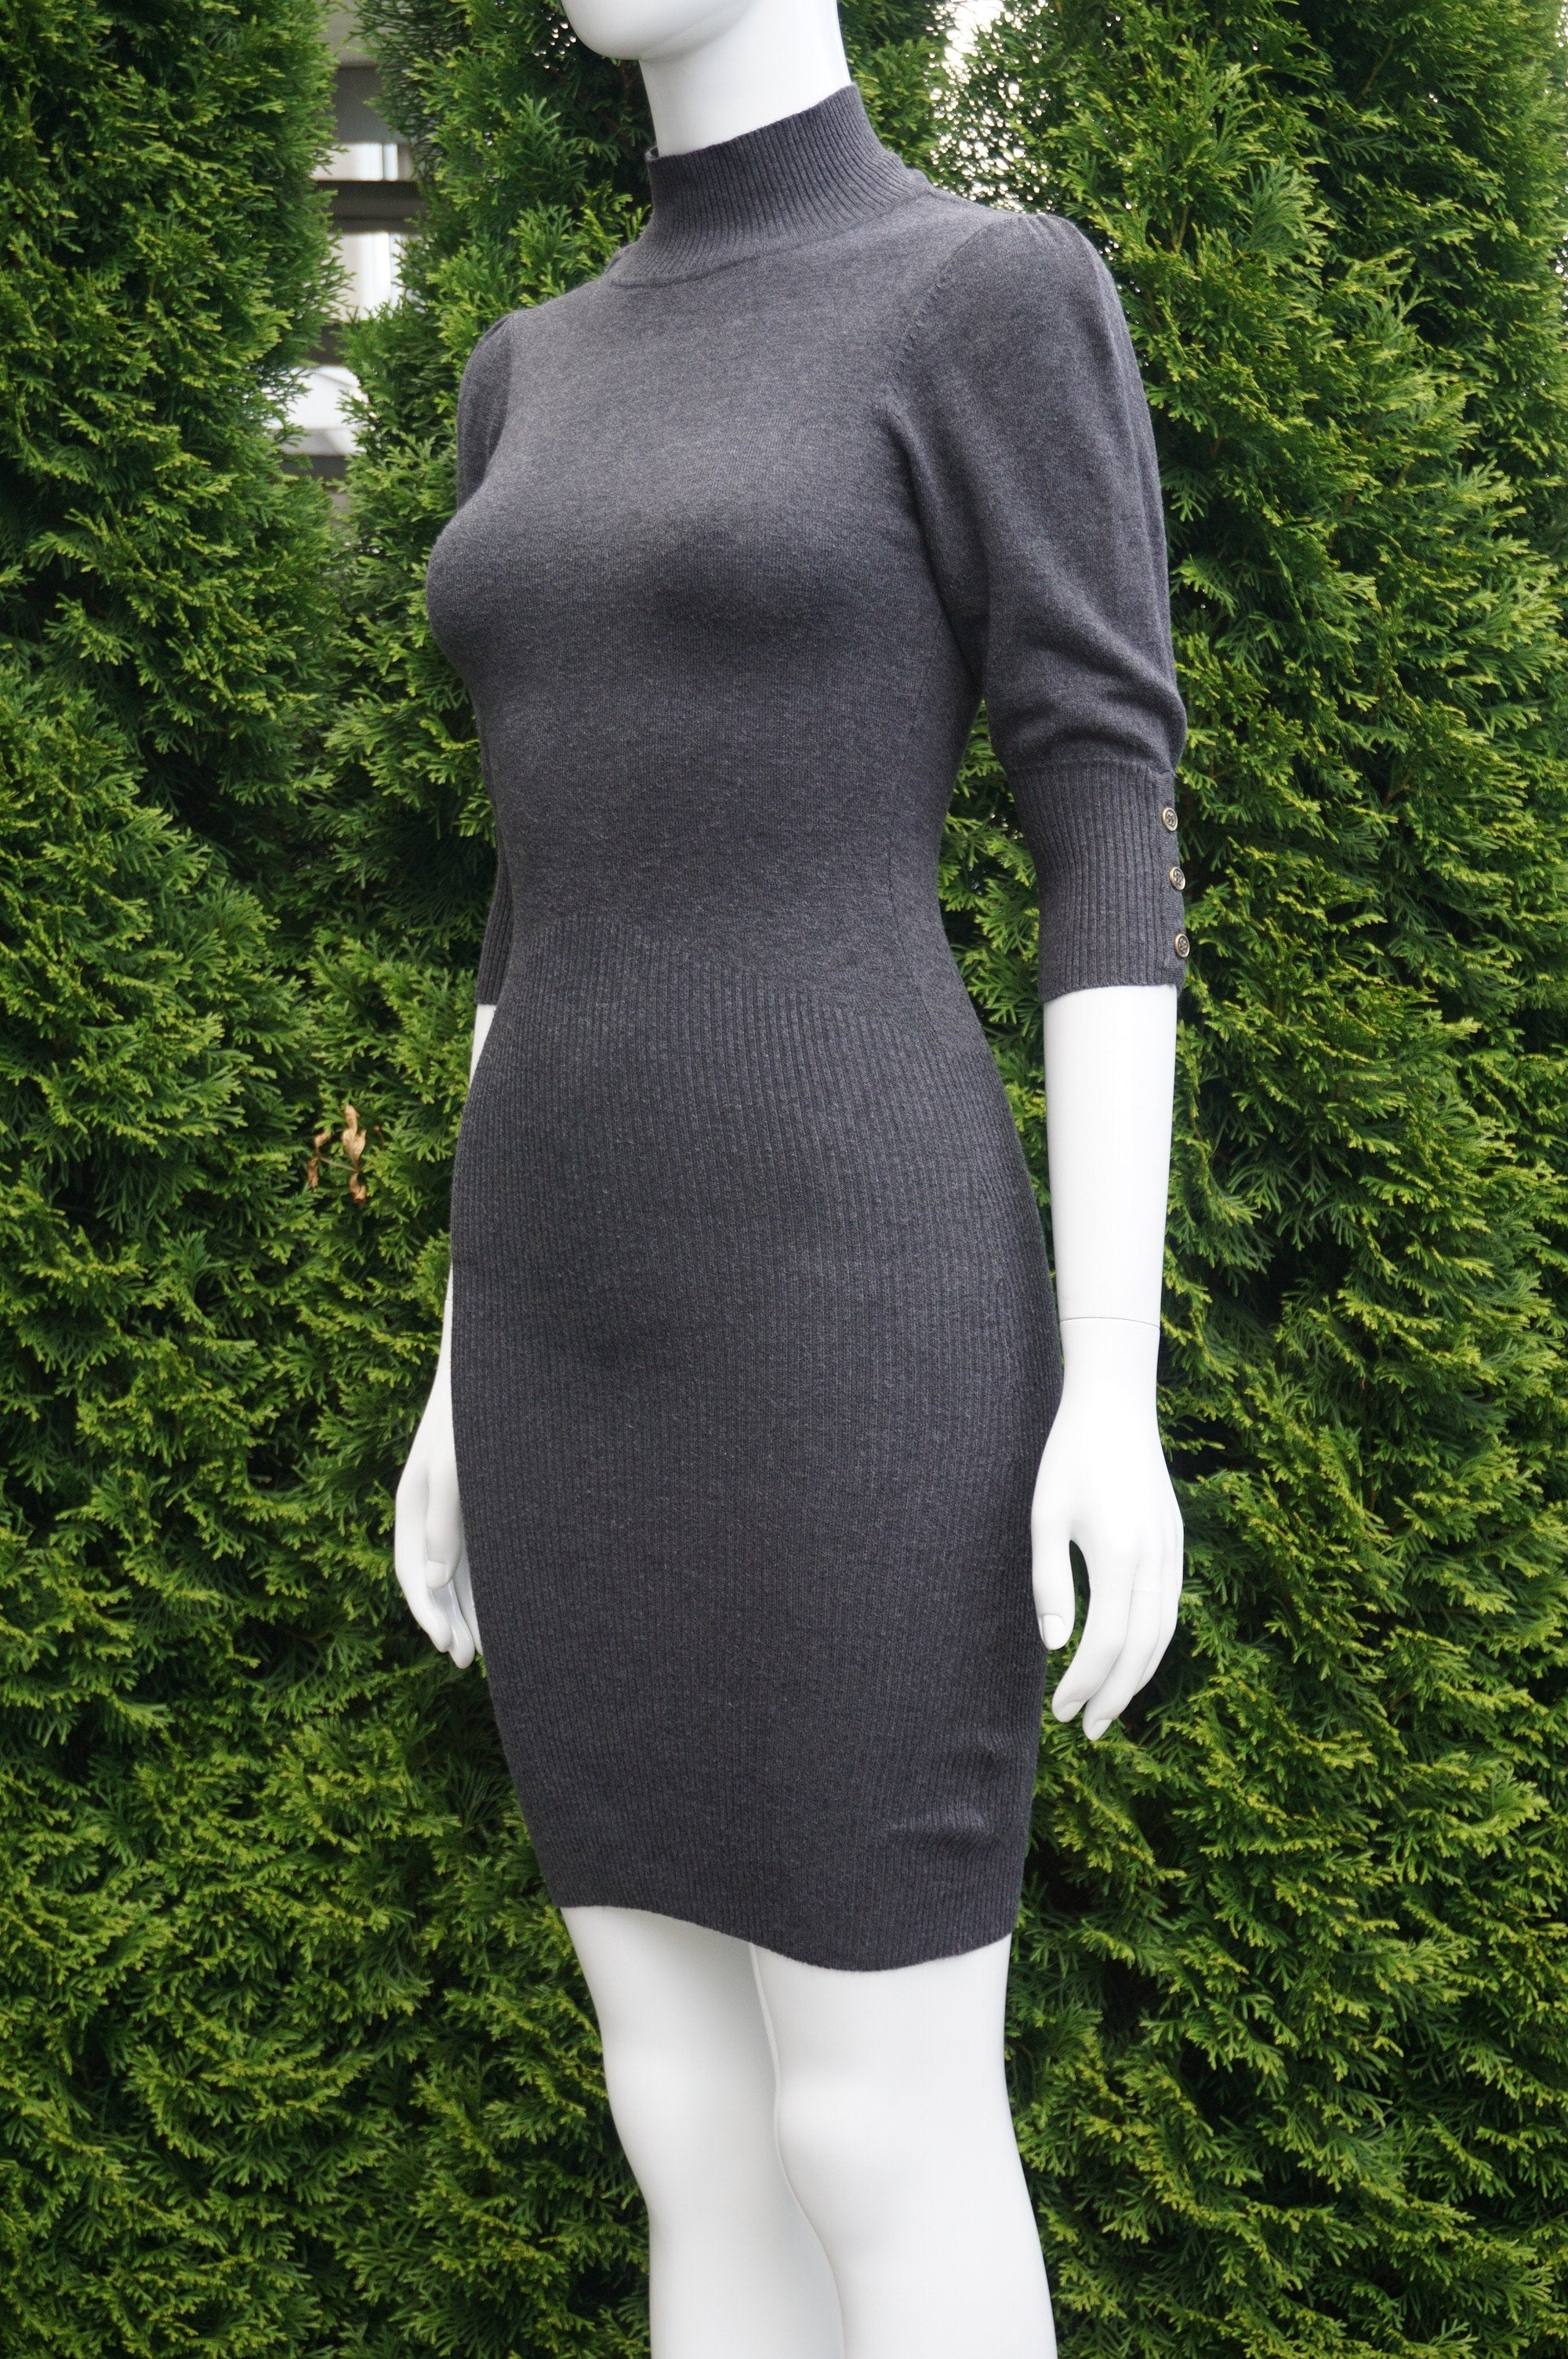 Seduction Dark Grey Half Sleeve Scoop Back Turtle Neck Sweater Dress, Bust 26, waist 23, length 36 (inches) when relaxed. Very stretchy., Grey, 62% Rayon, 23% Polyester, 15% Spandex, women's Dresses & Rompers, women's Grey Dresses & Rompers, Seduction women's Dresses & Rompers, warm sweater dress, half sleeve sweater, warm dress, warm winter dress,